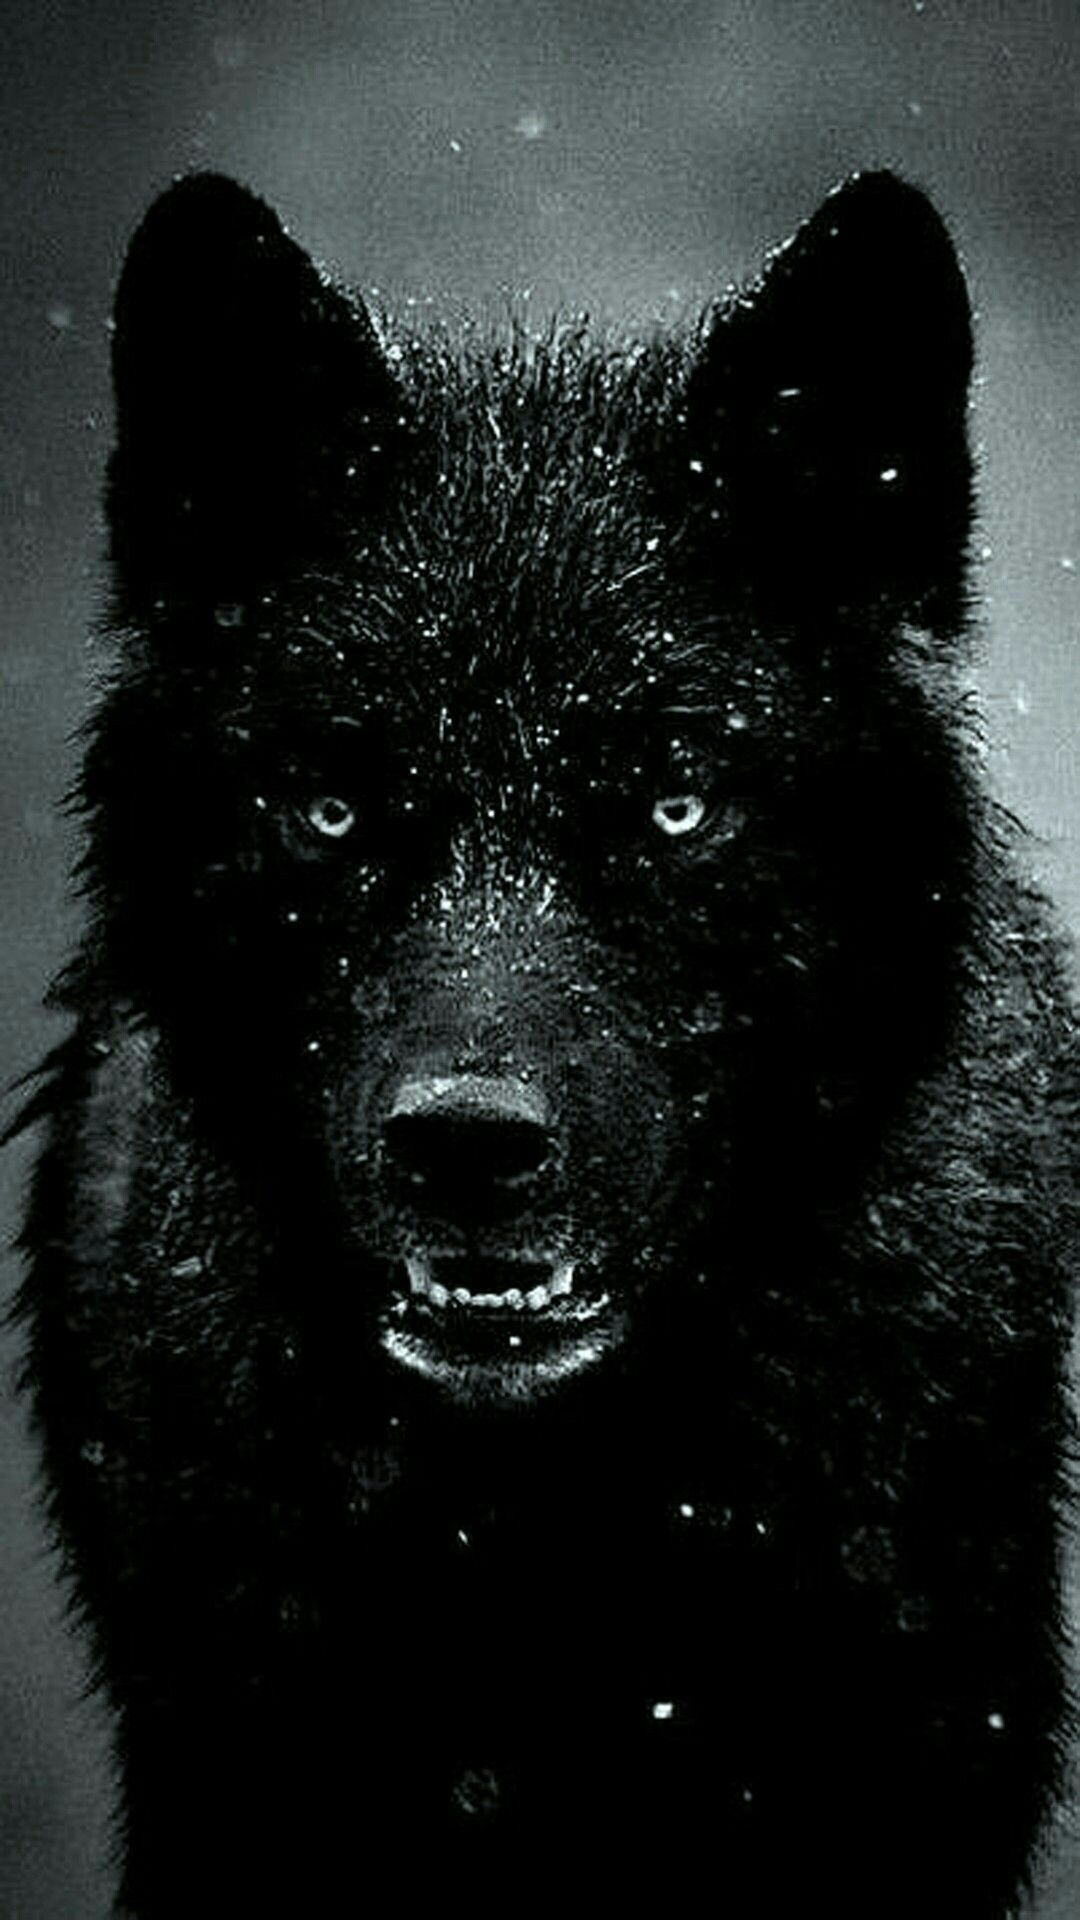 Epic Wolf Hd Wallpapers Hupages Download Iphone Wallpapers In 2020 Iphone Wallpaper Wolf Black Wolf Wolf Wallpaper